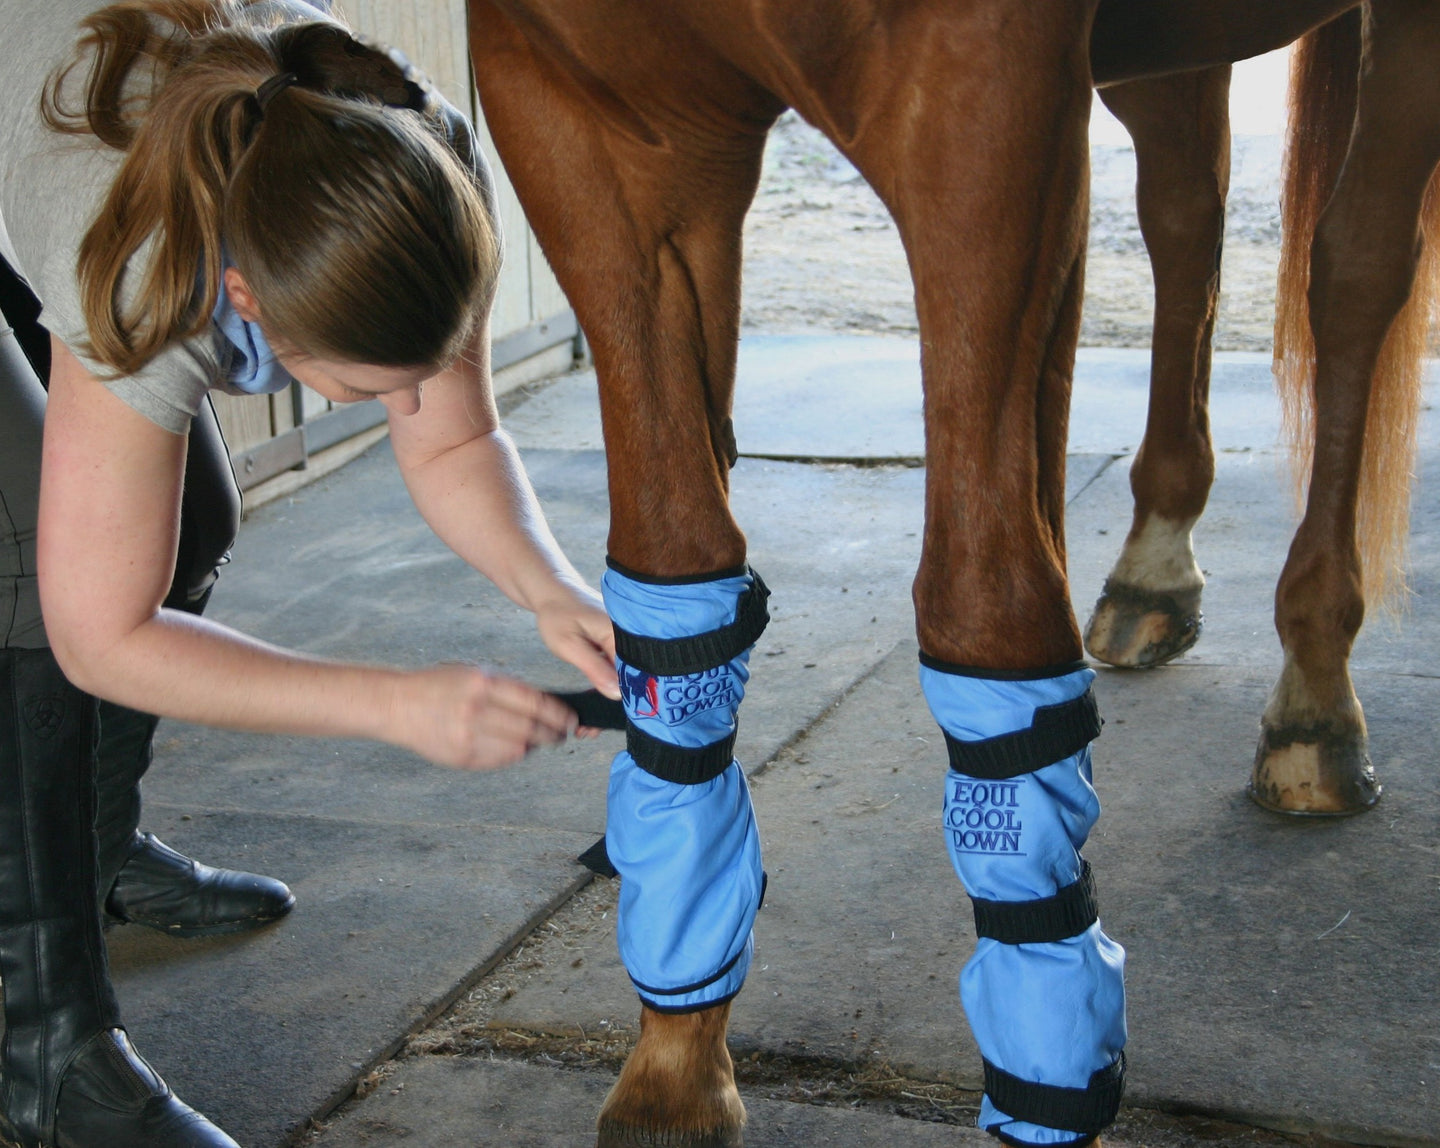 Equi Cool Down Leg Wraps